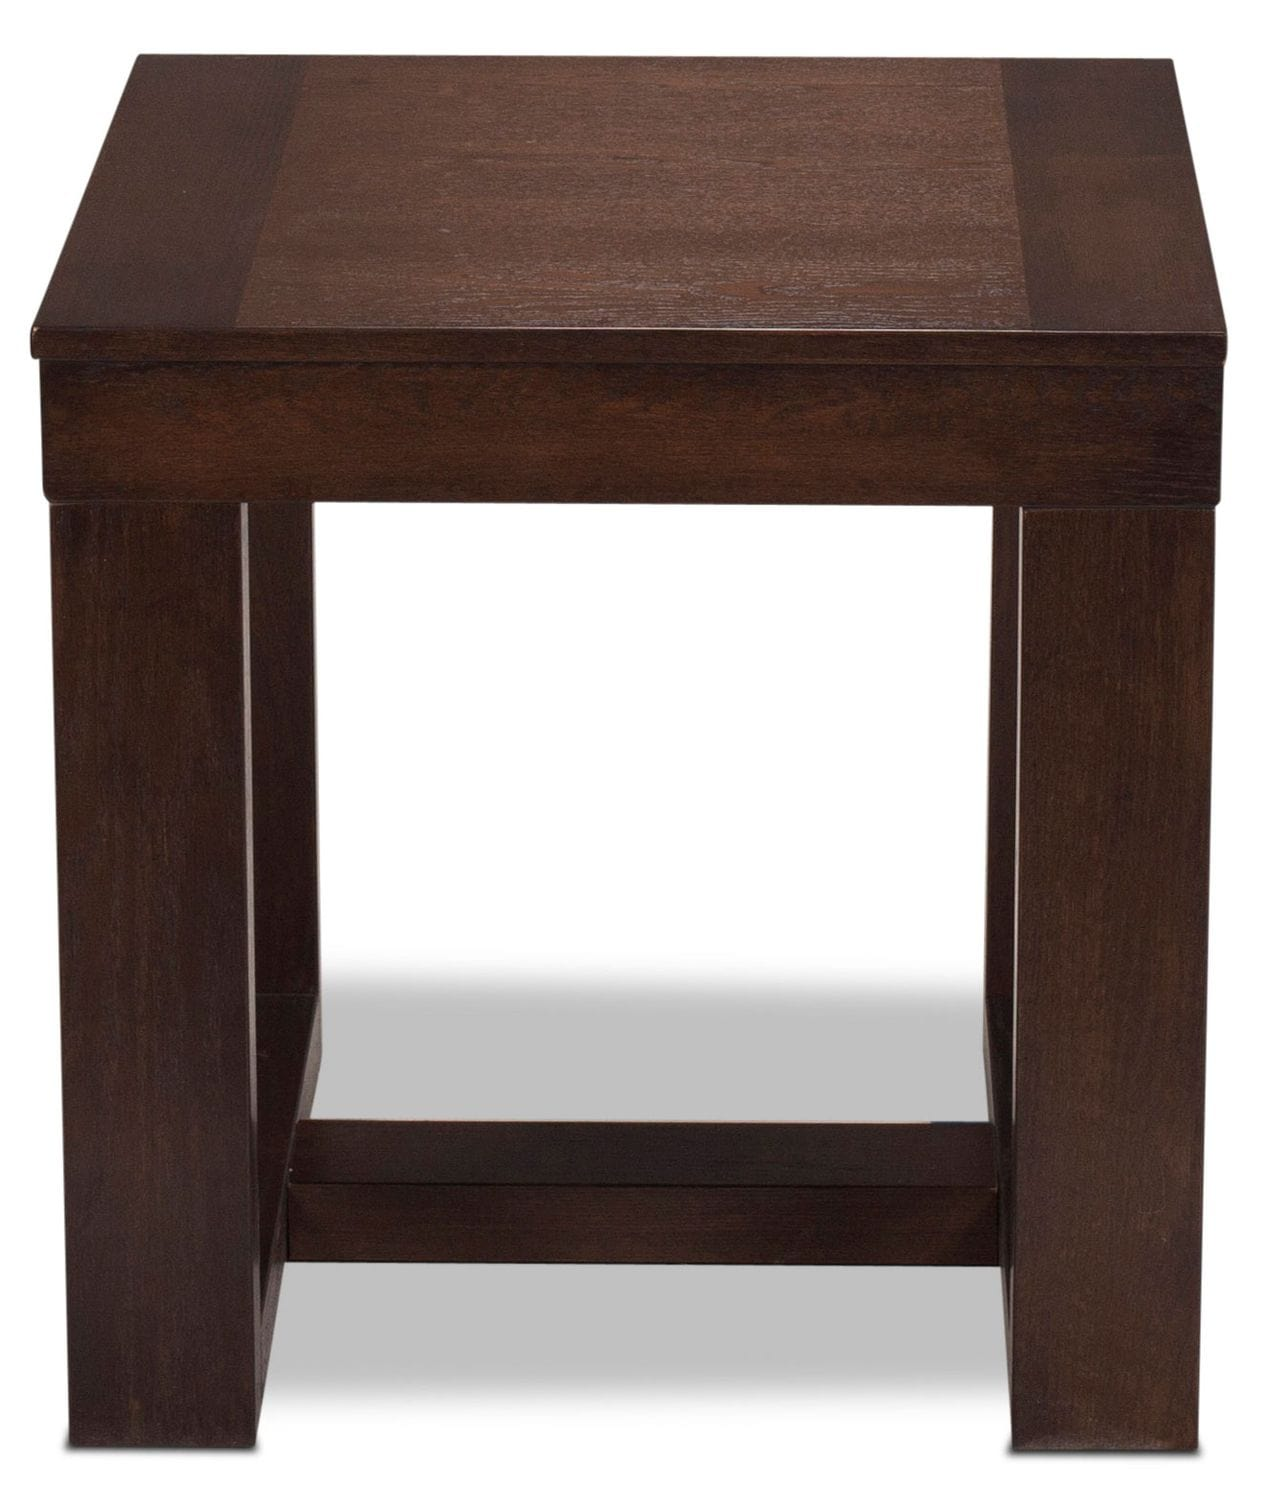 Accent and Occasional Furniture - Monterey End Table - Dark Brown